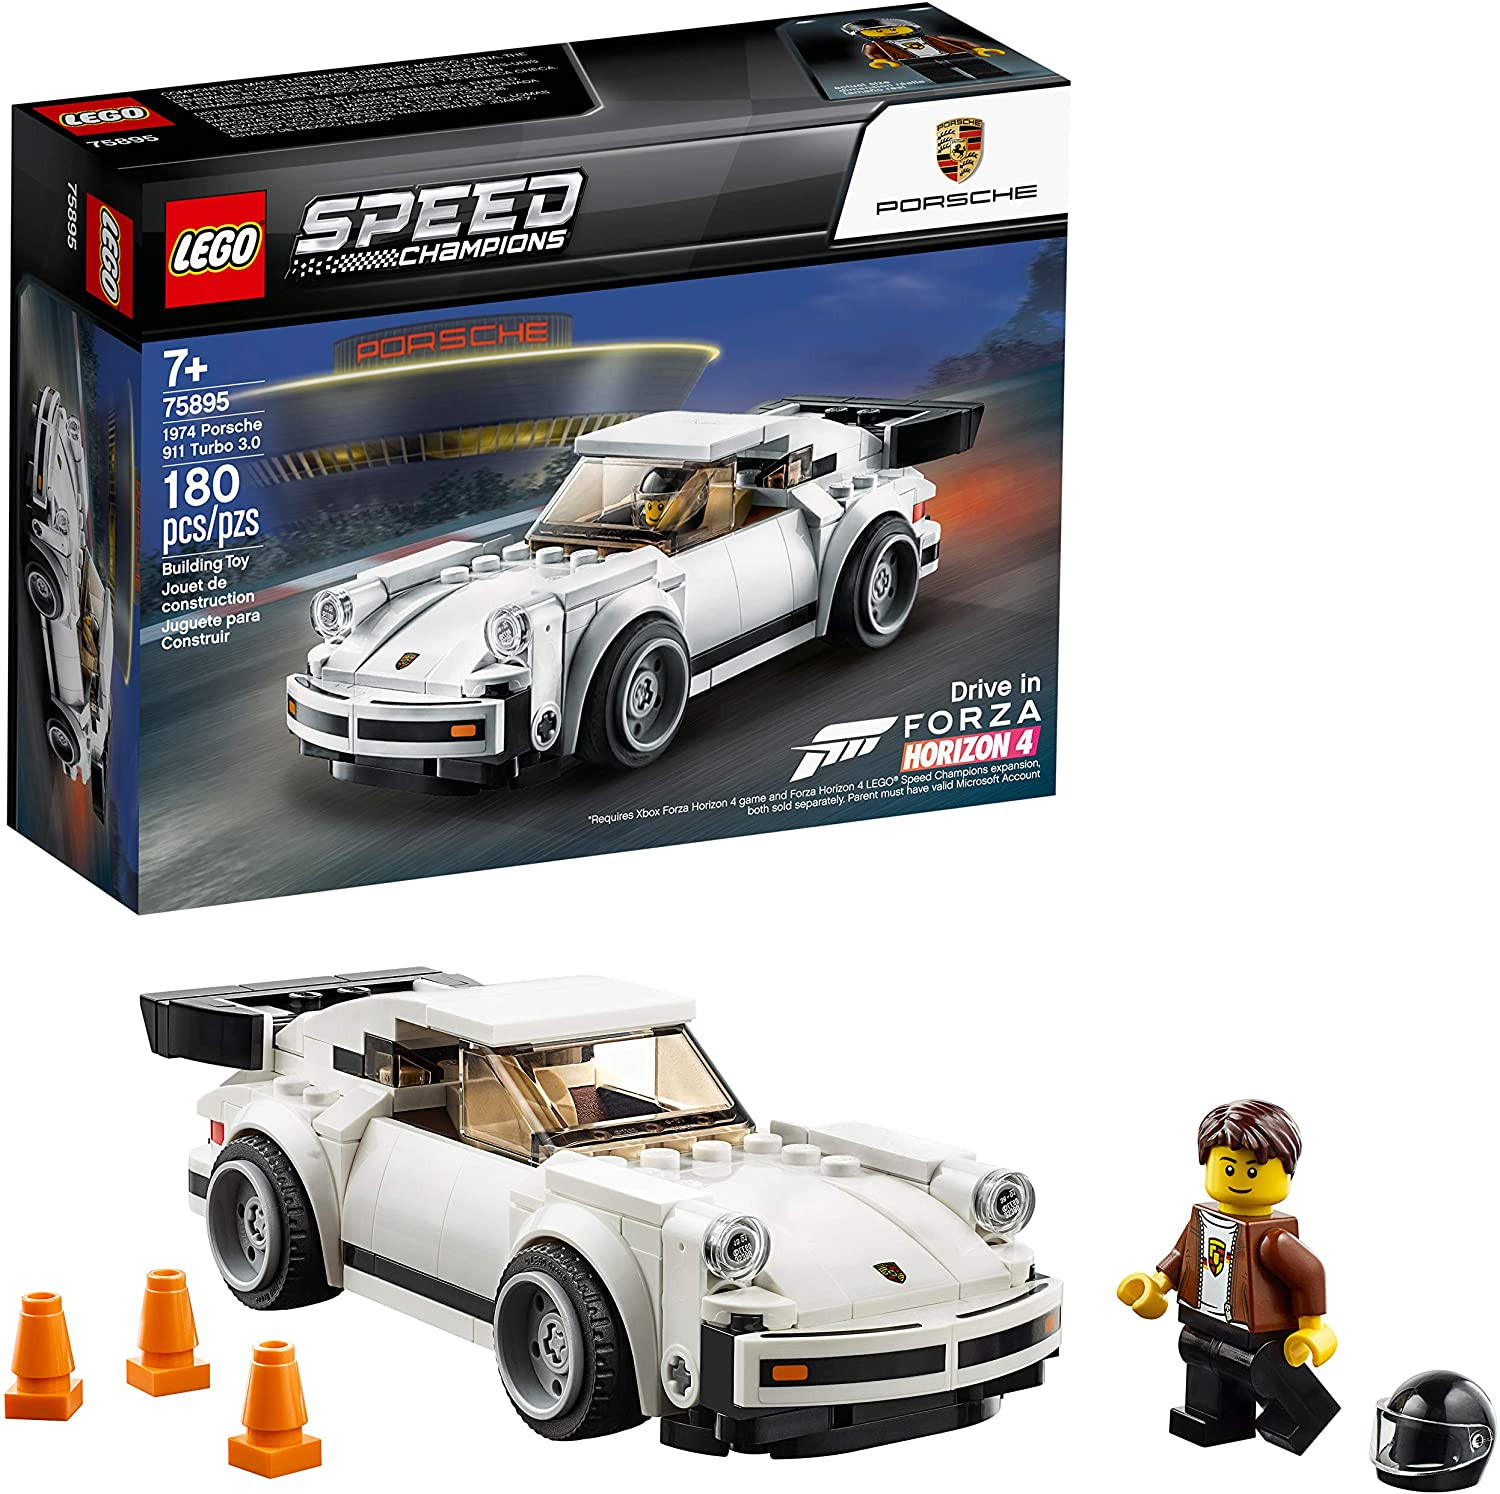 LEGO Speed Champions 1974 Porsche 911 Turbo 3.0 75895 Building Kit (179 Pieces)